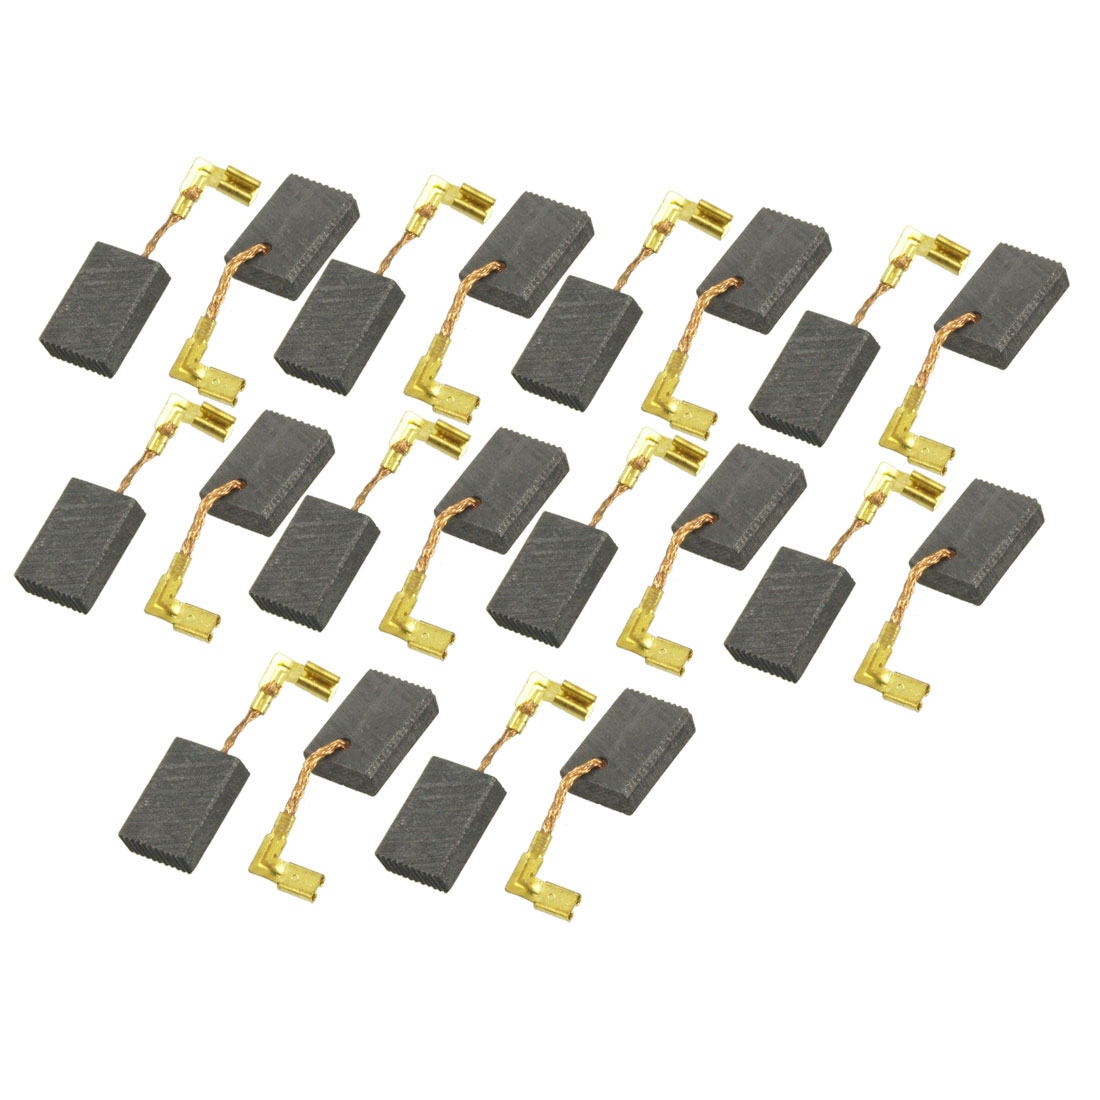 "20 Pcs Electric Drill Motor Carbon Brushes 5/8"" x 7/16"" x 3/16"""